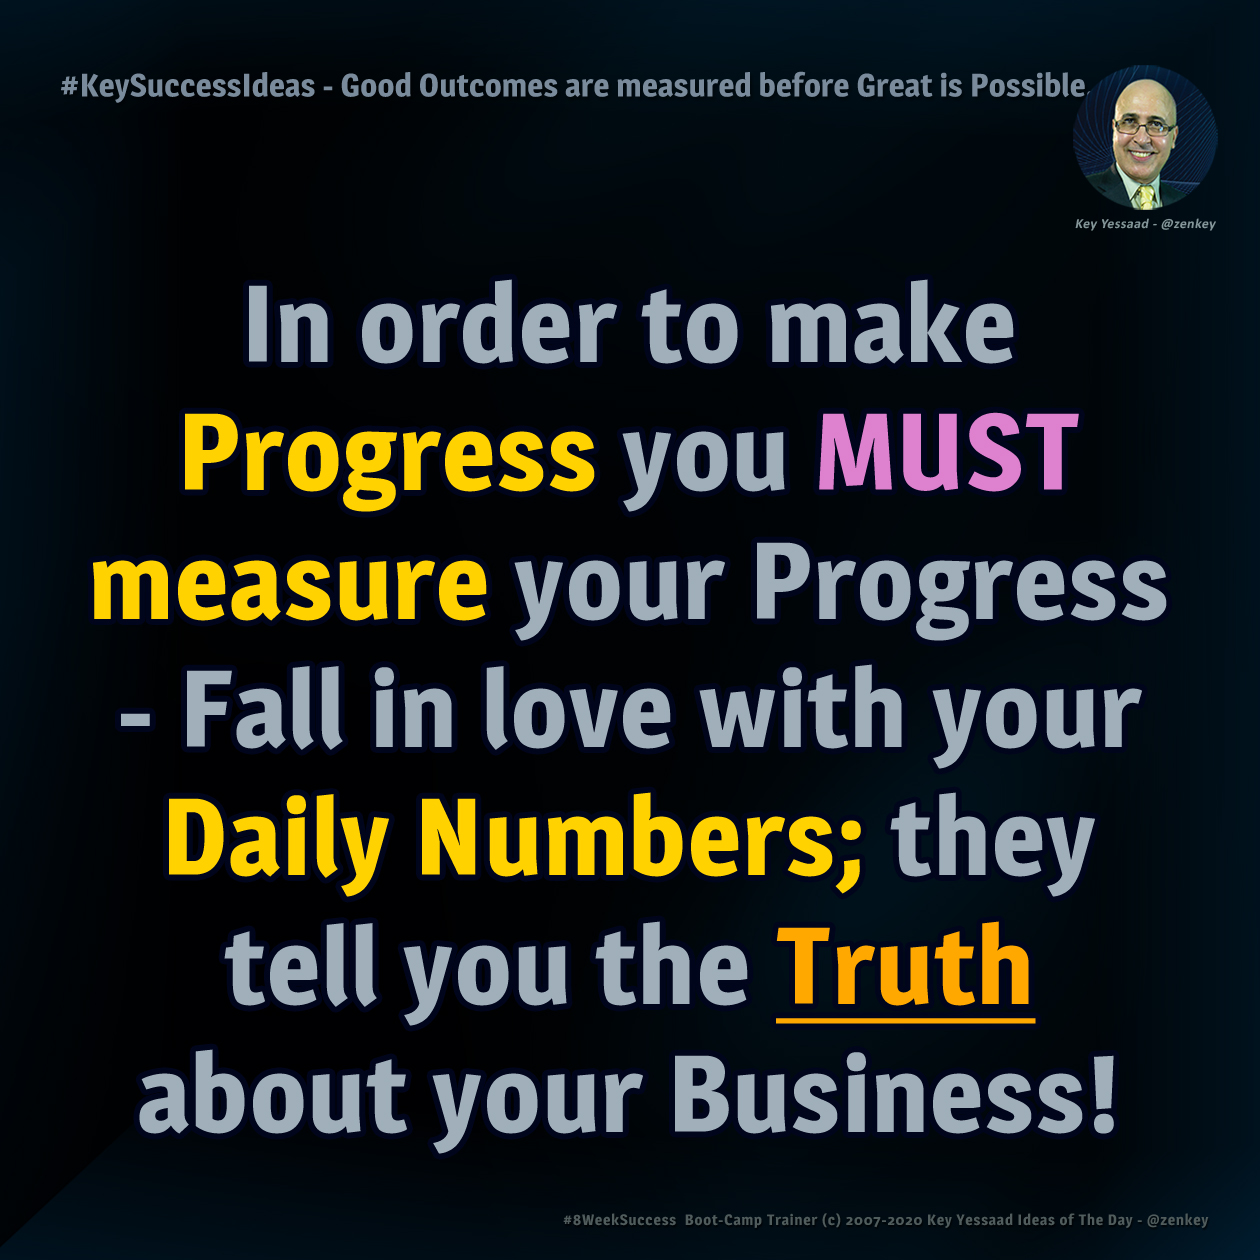 Good Outcomes are measured before Great is Possible... - #KeySuccessIdeas